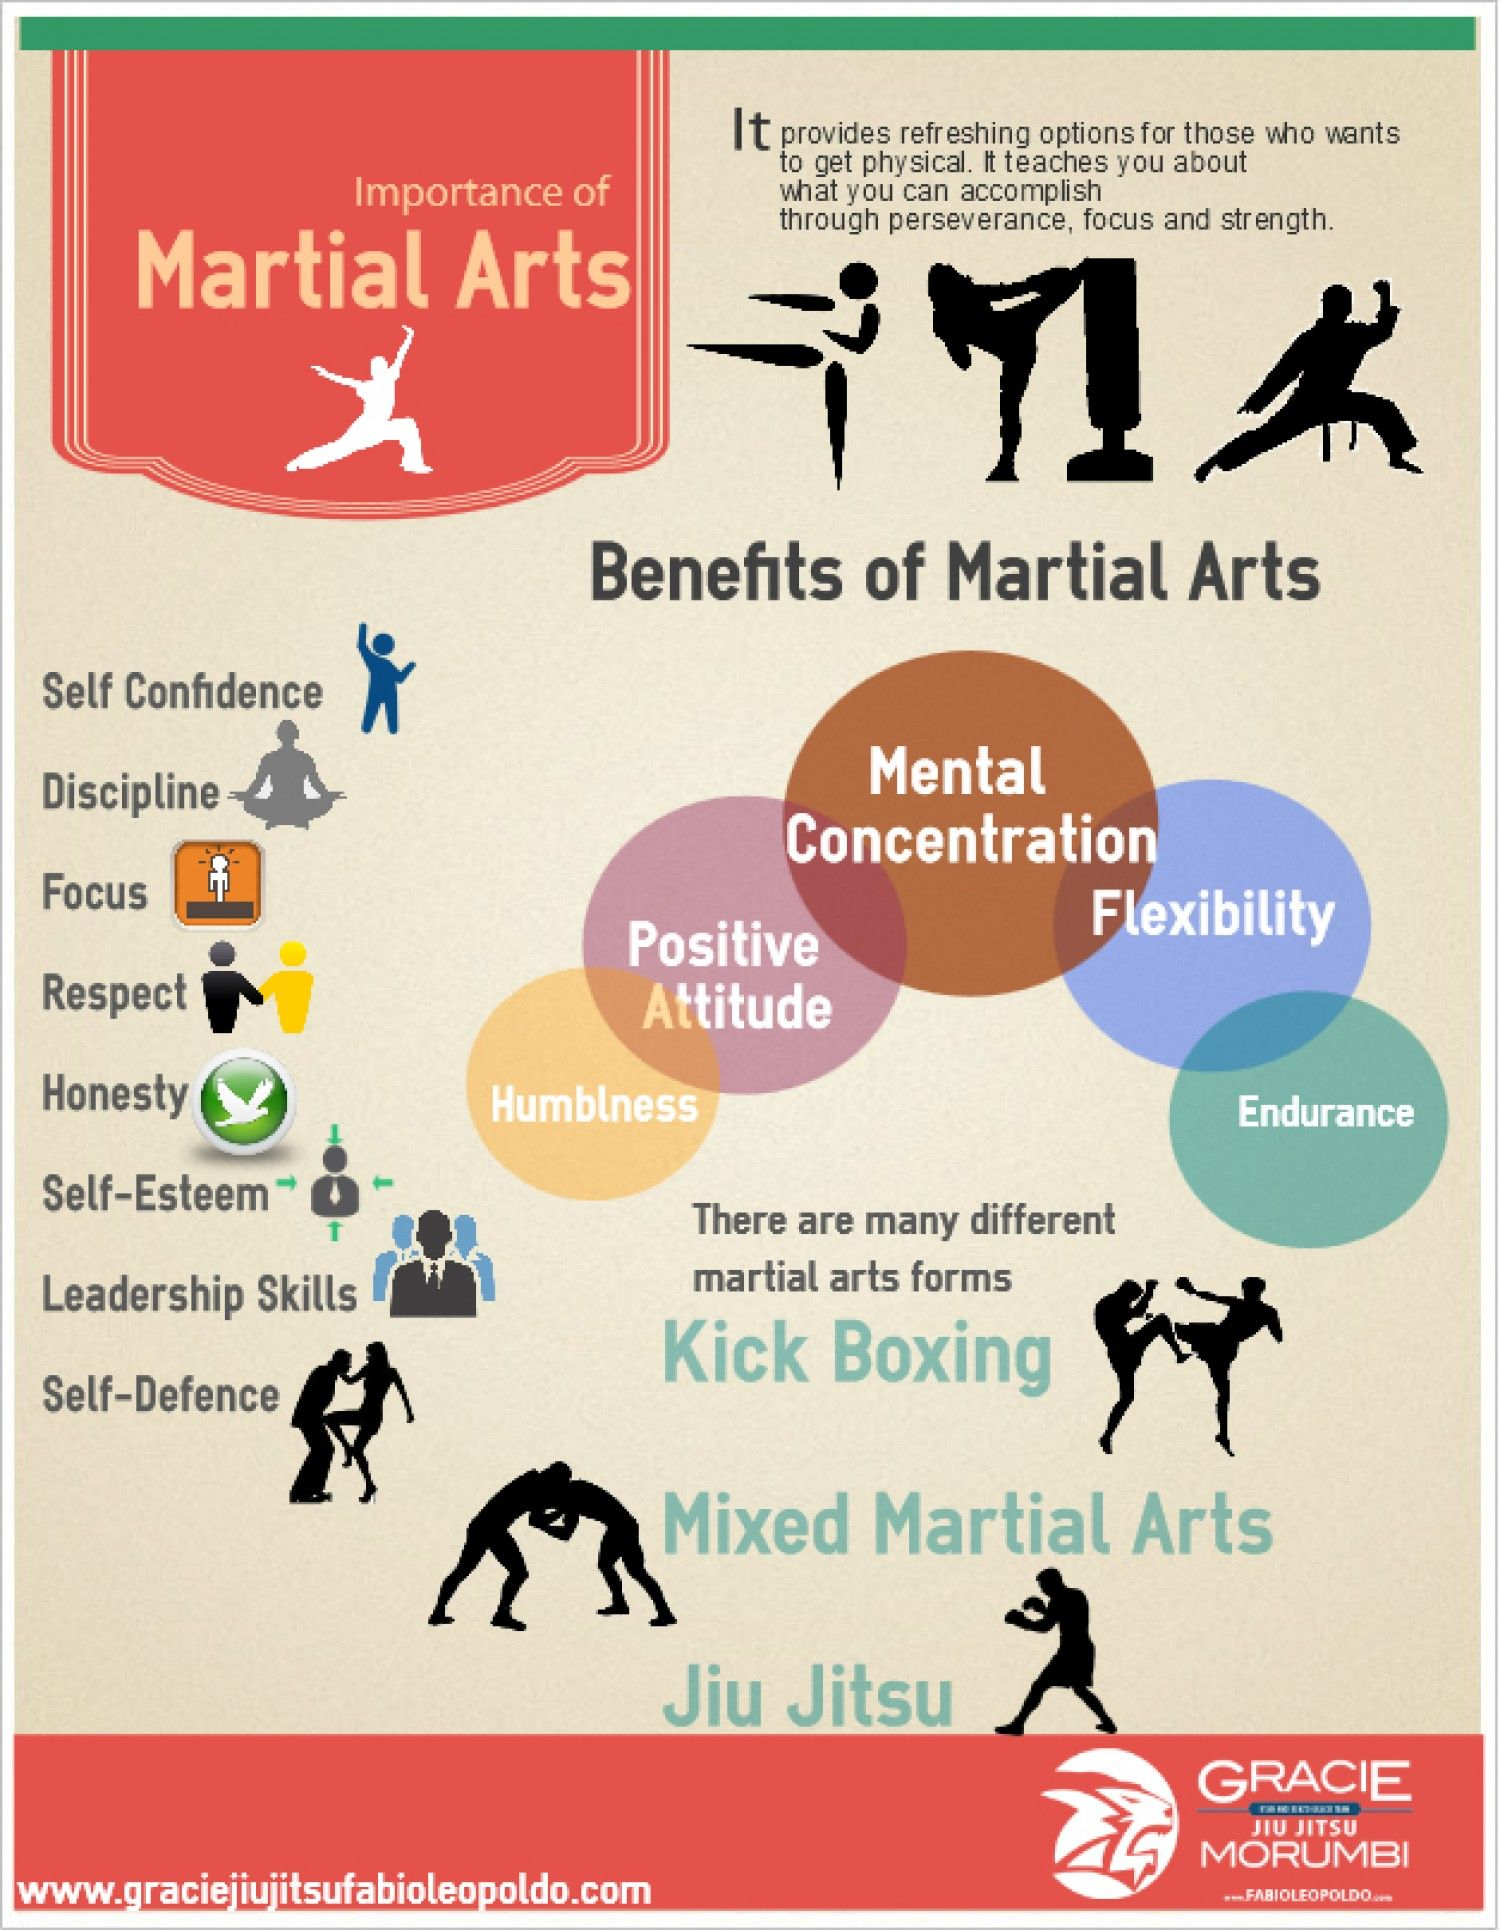 Importance Of Martial Arts Infographic